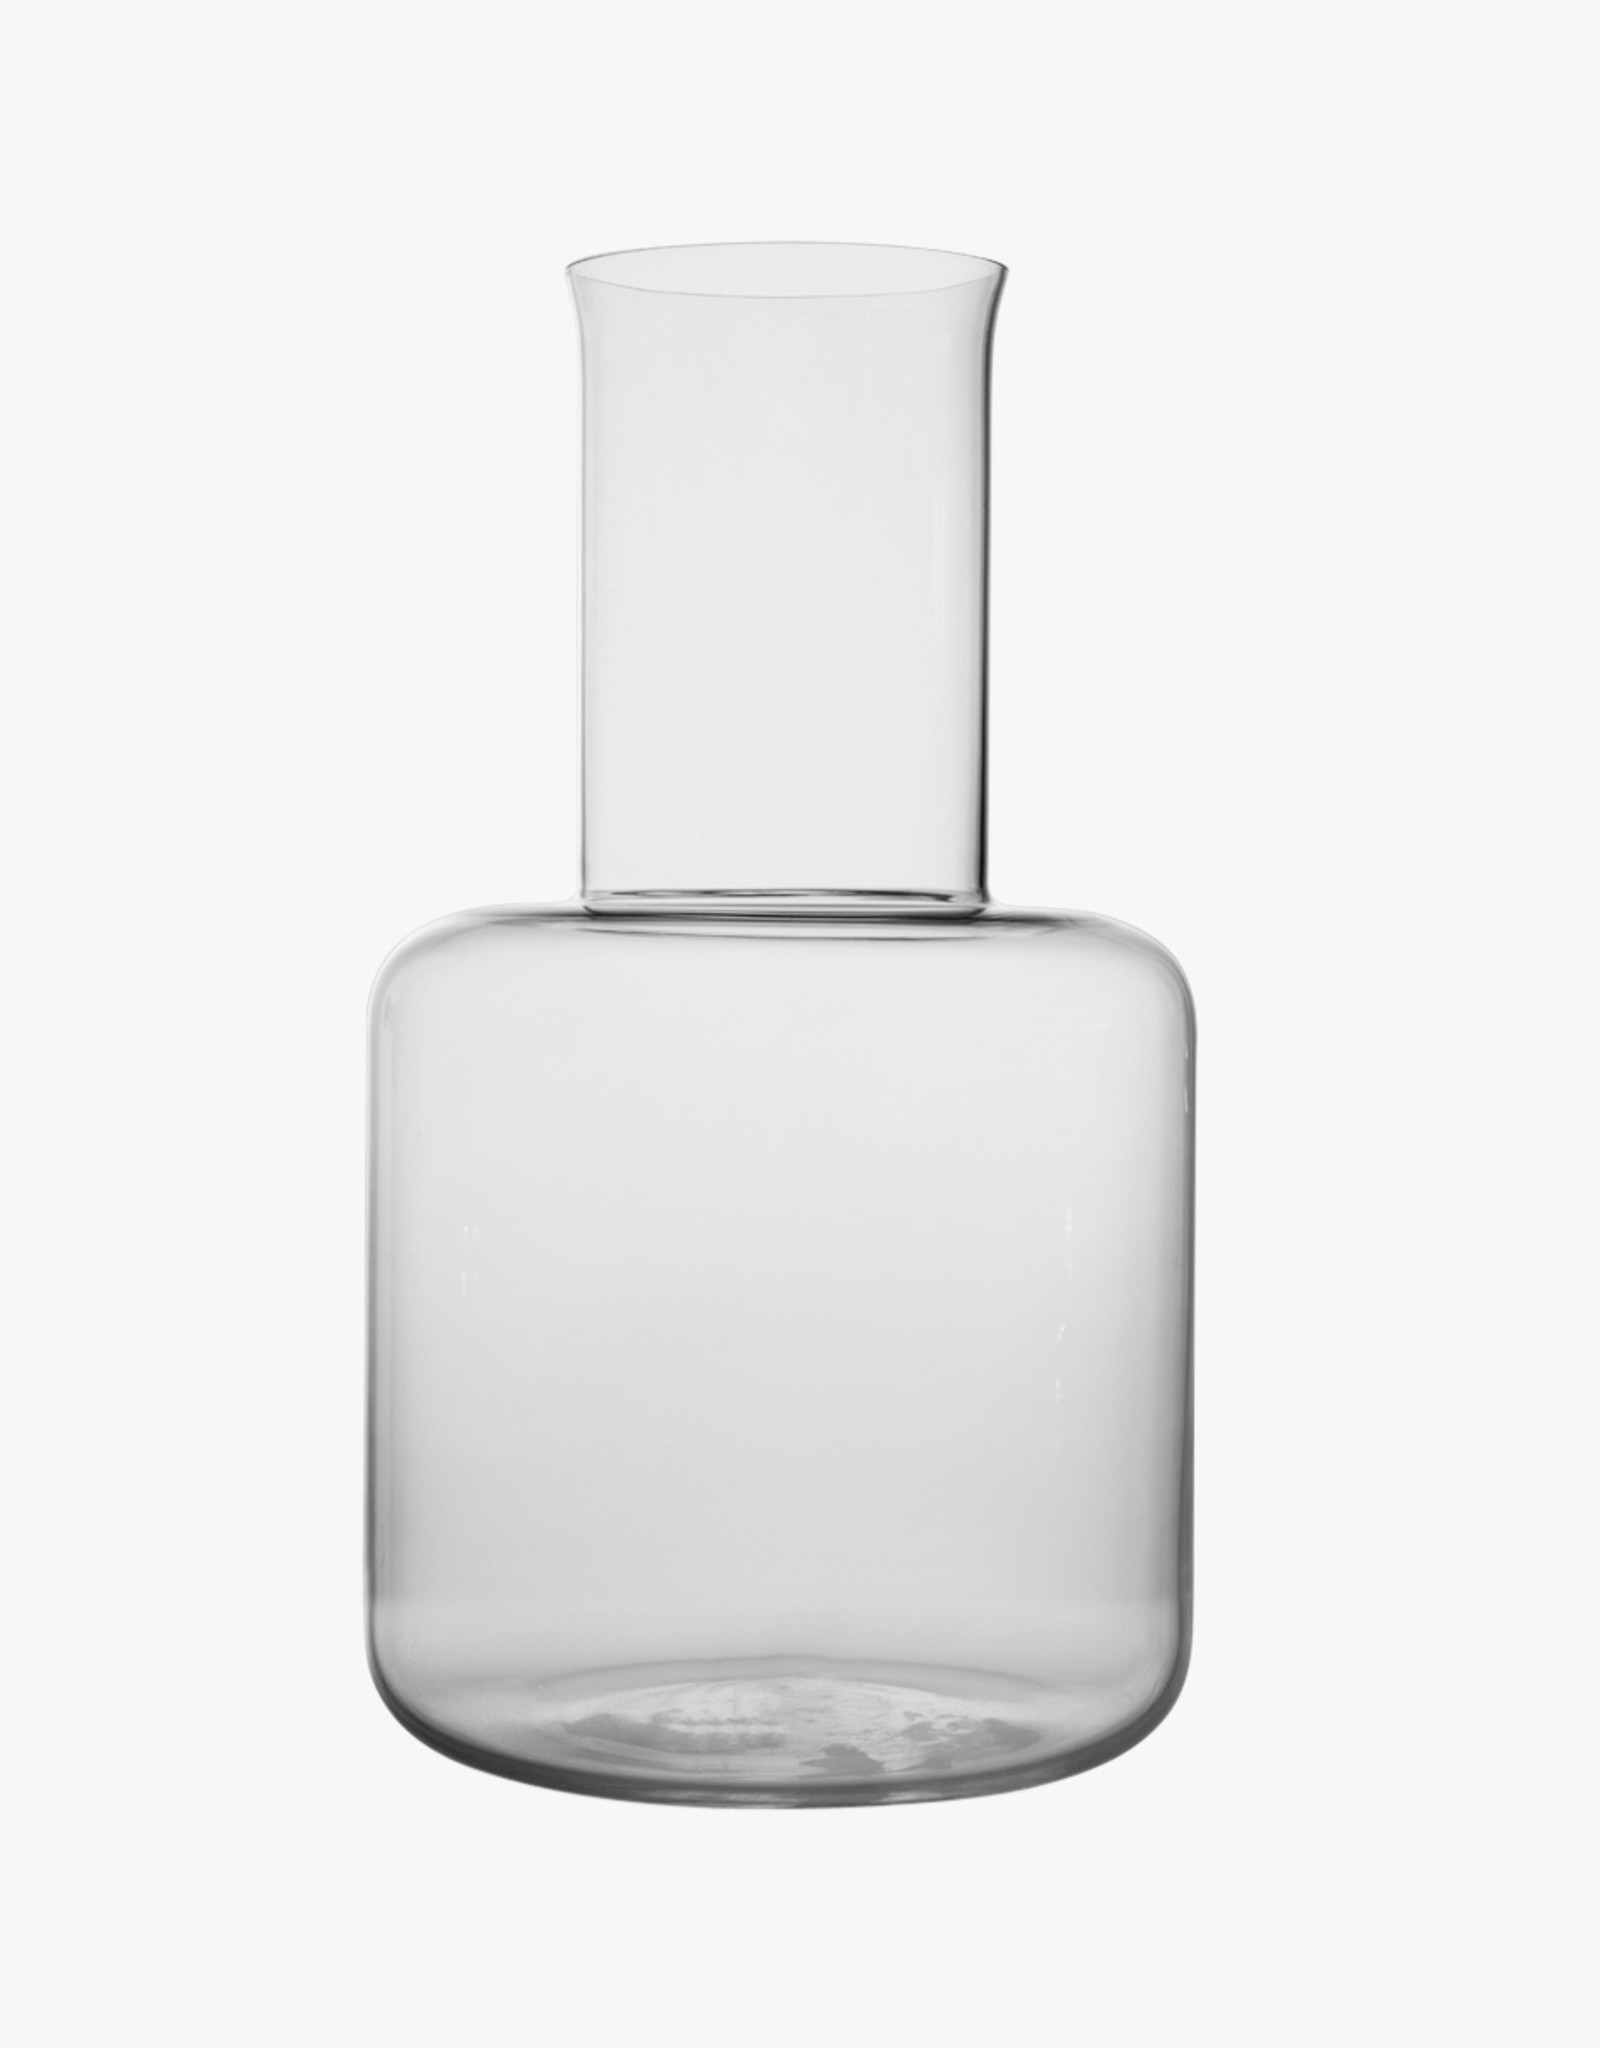 Pony carafe by Carina Seth Andersson | 100cl